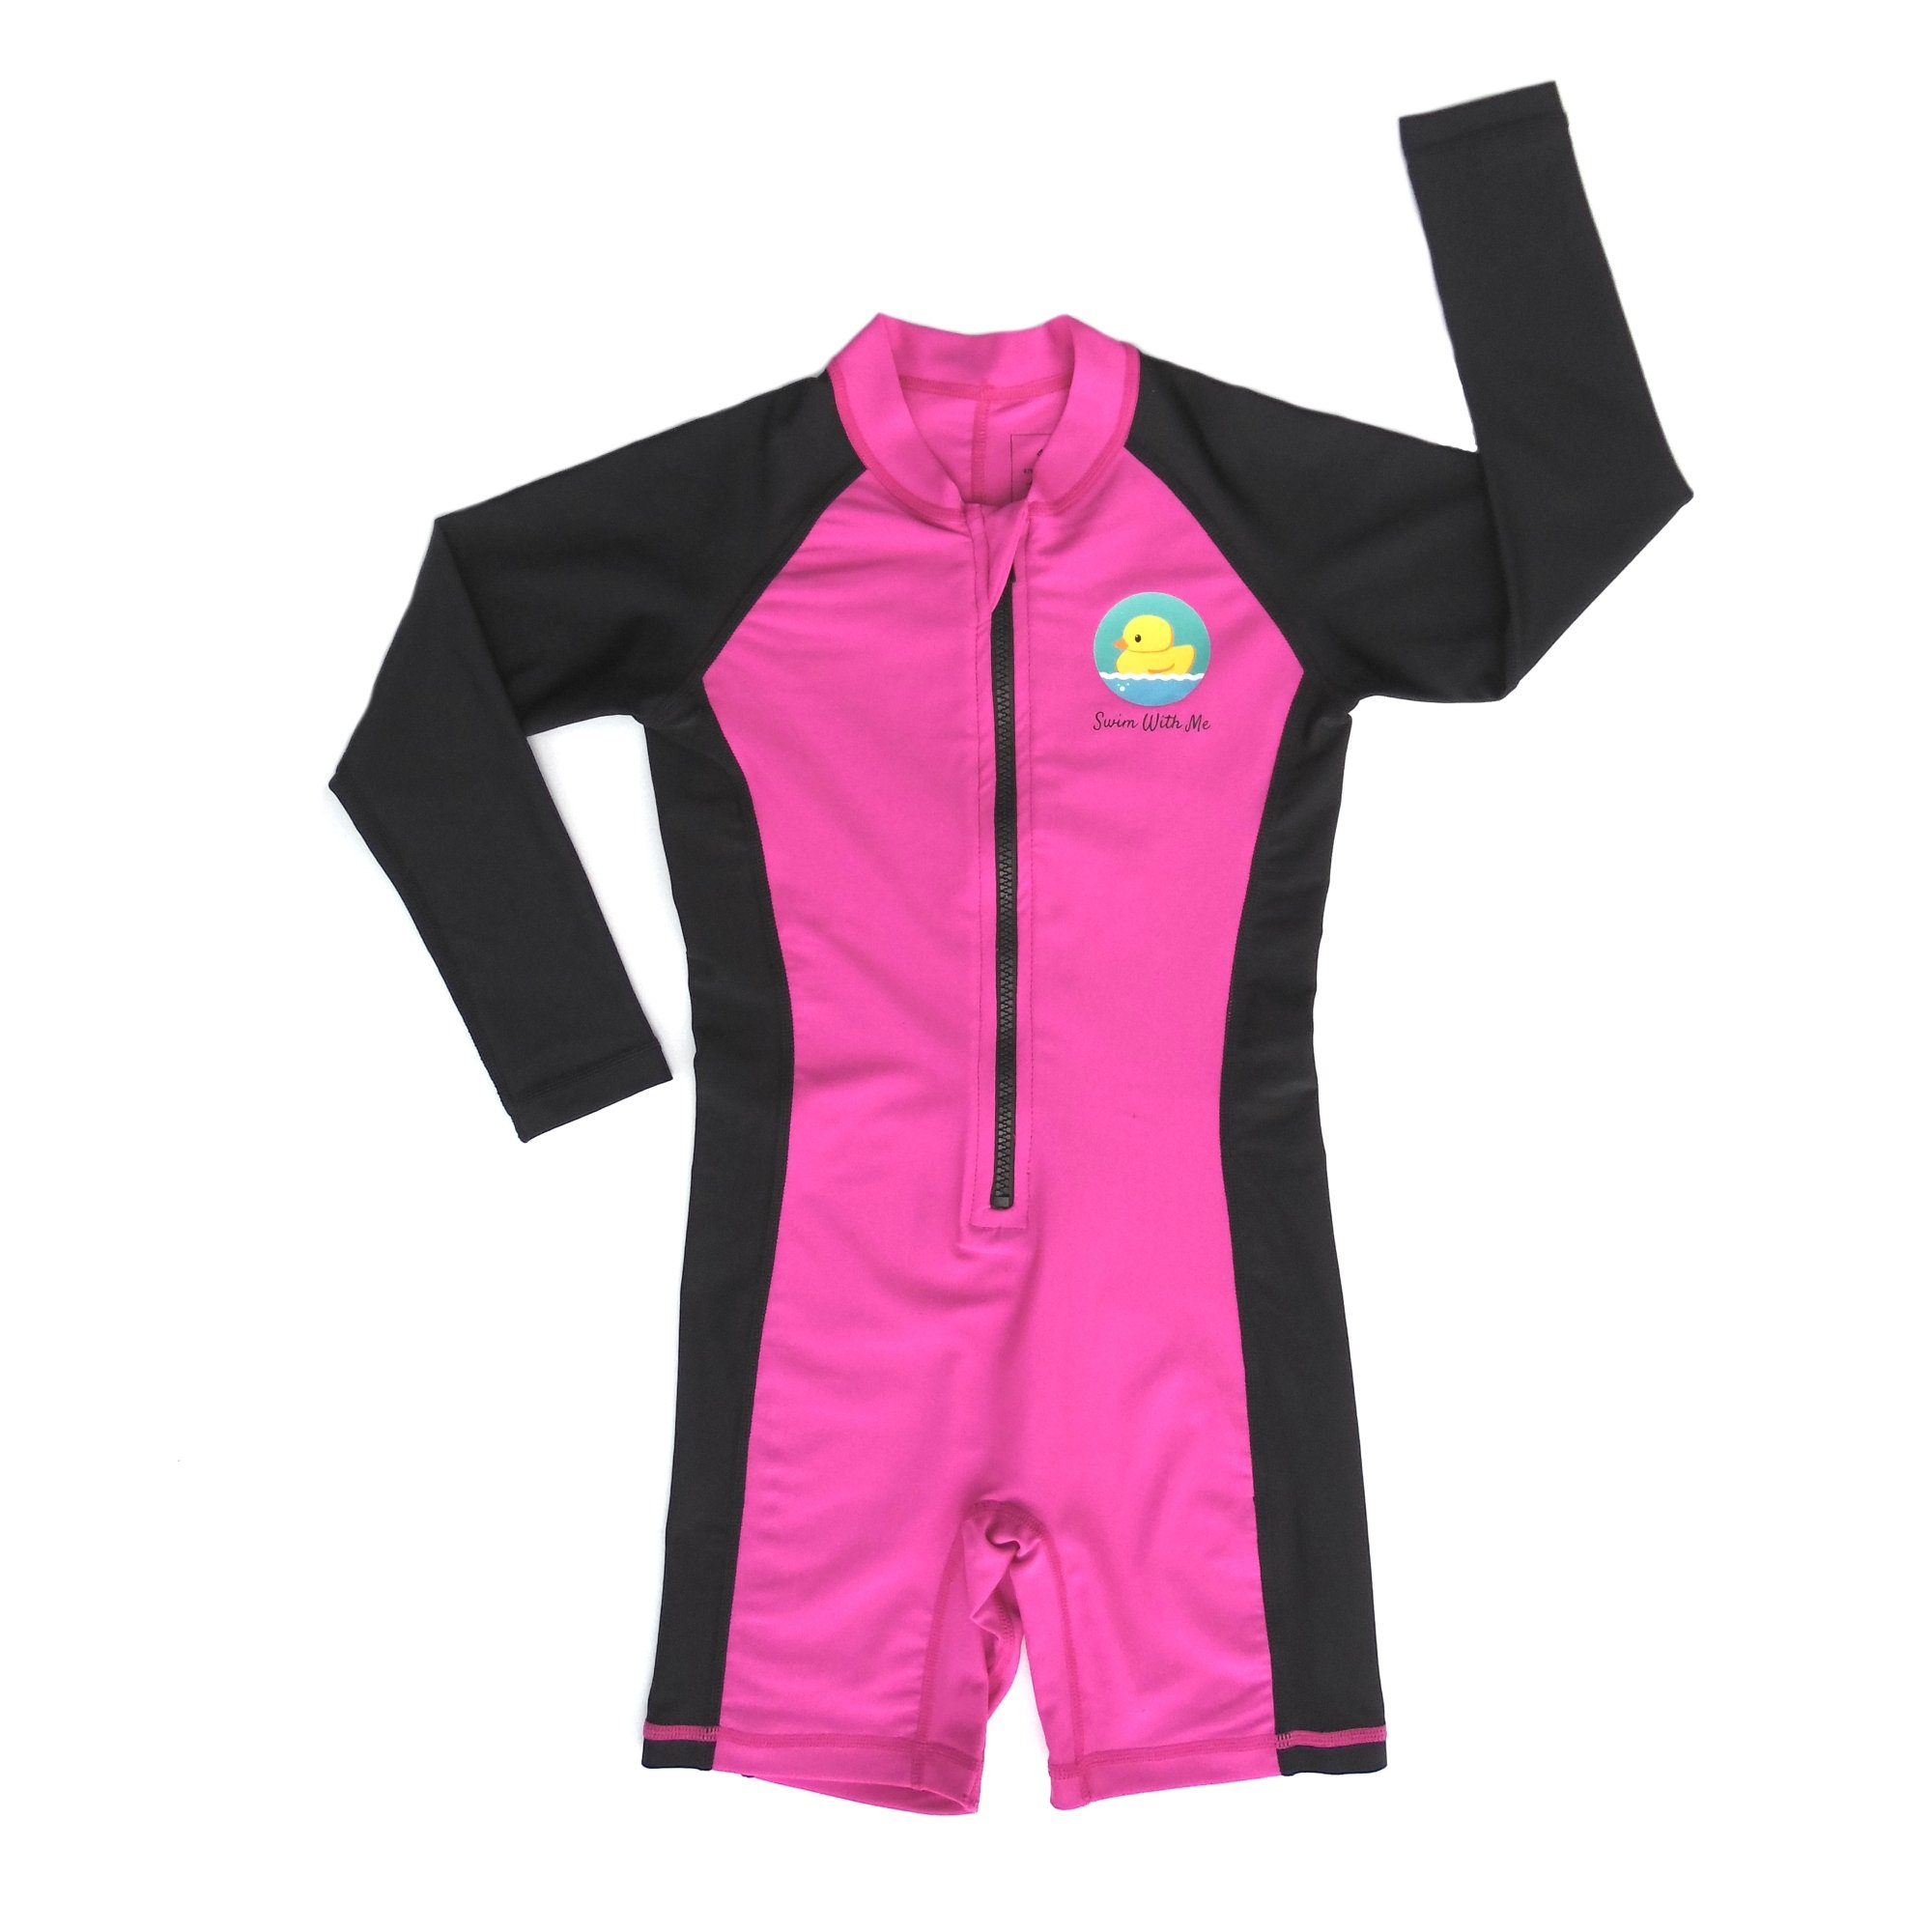 Swim with Me- SPF 50+ Total Sun Protection Swimsuit for Infant, Baby, Toddler, and Kids! (Magenta, 3 Years) by BIB-ON